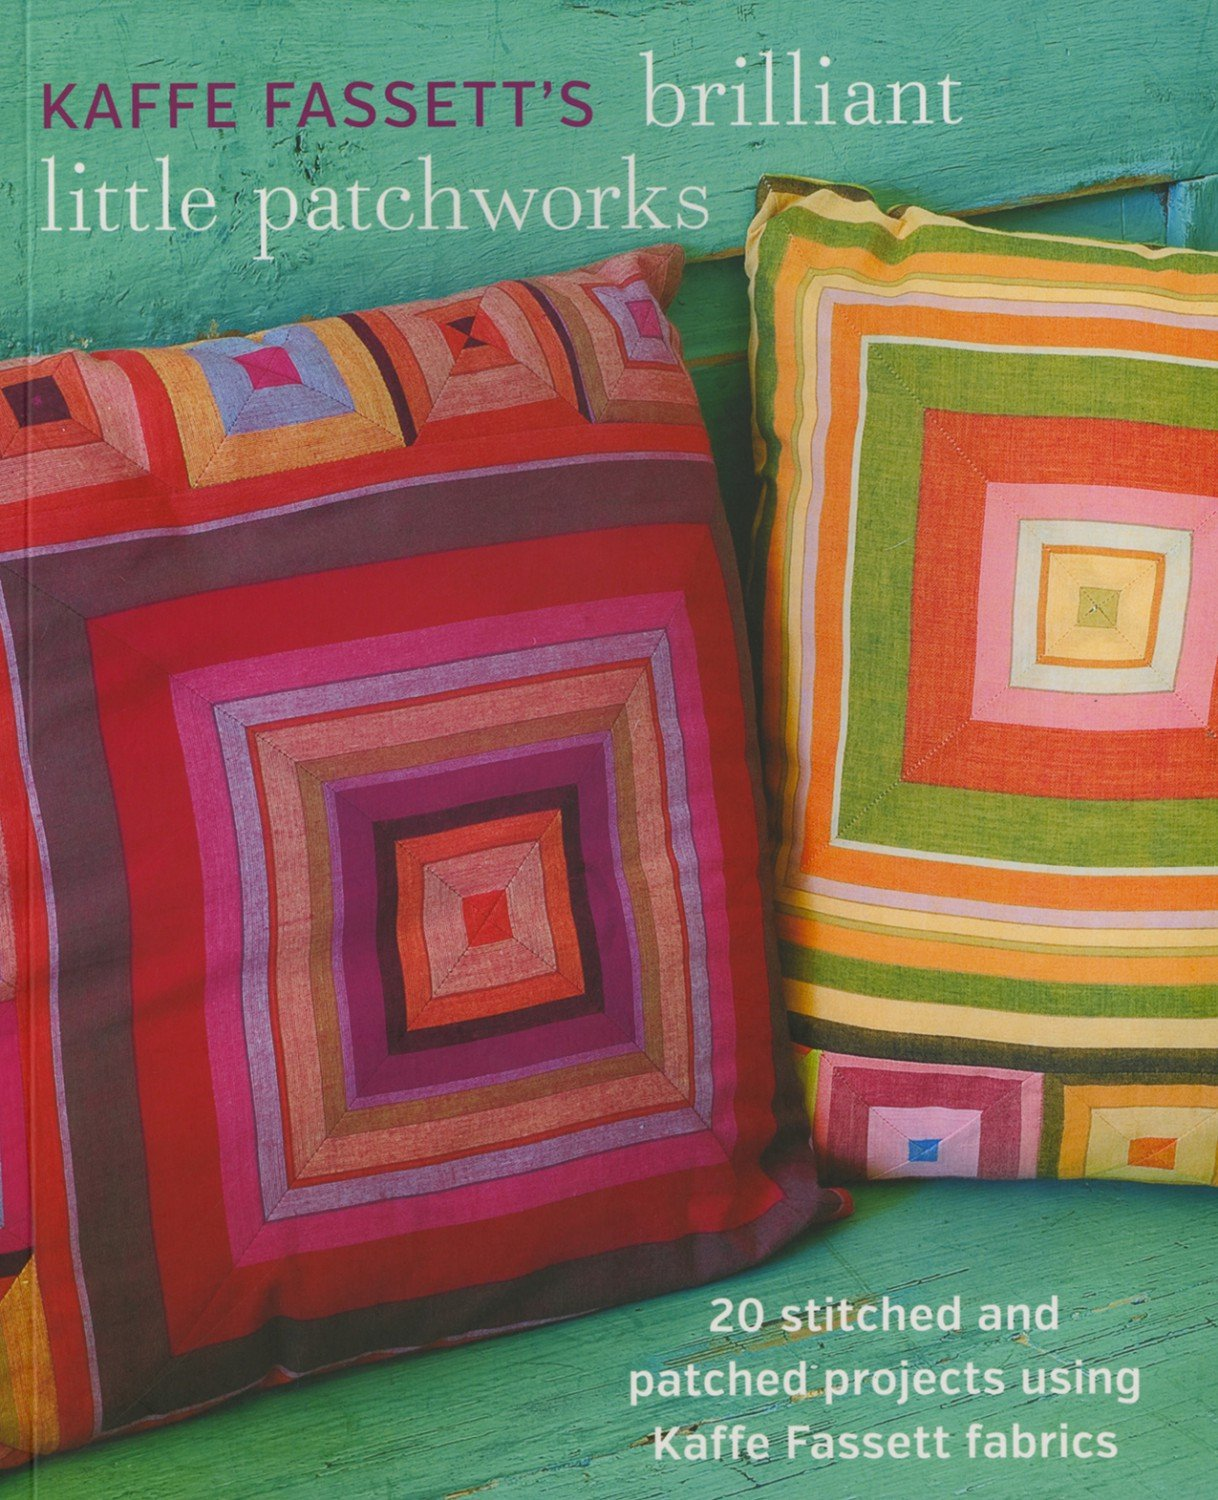 Brilliant Little Patchworks